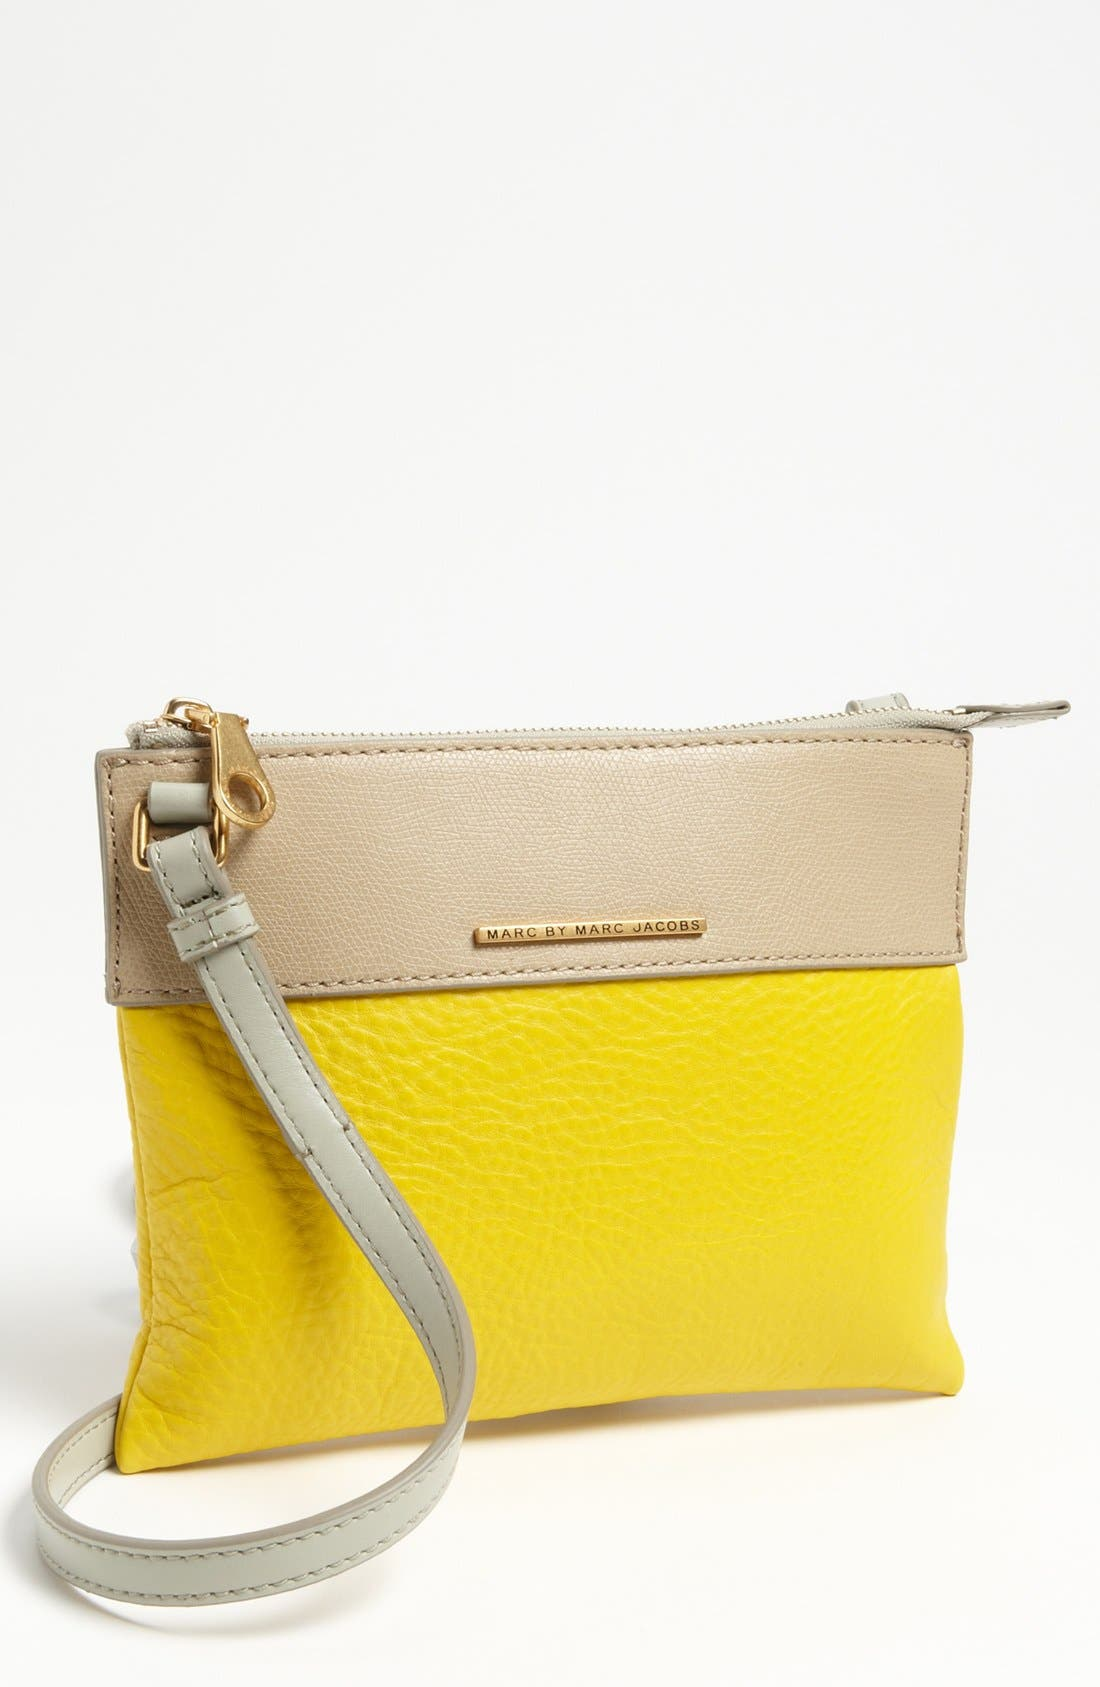 Alternate Image 1 Selected - MARC BY MARC JACOBS 'Sheltered Island - Percy' Colorblock Leather Crossbody Bag, Small